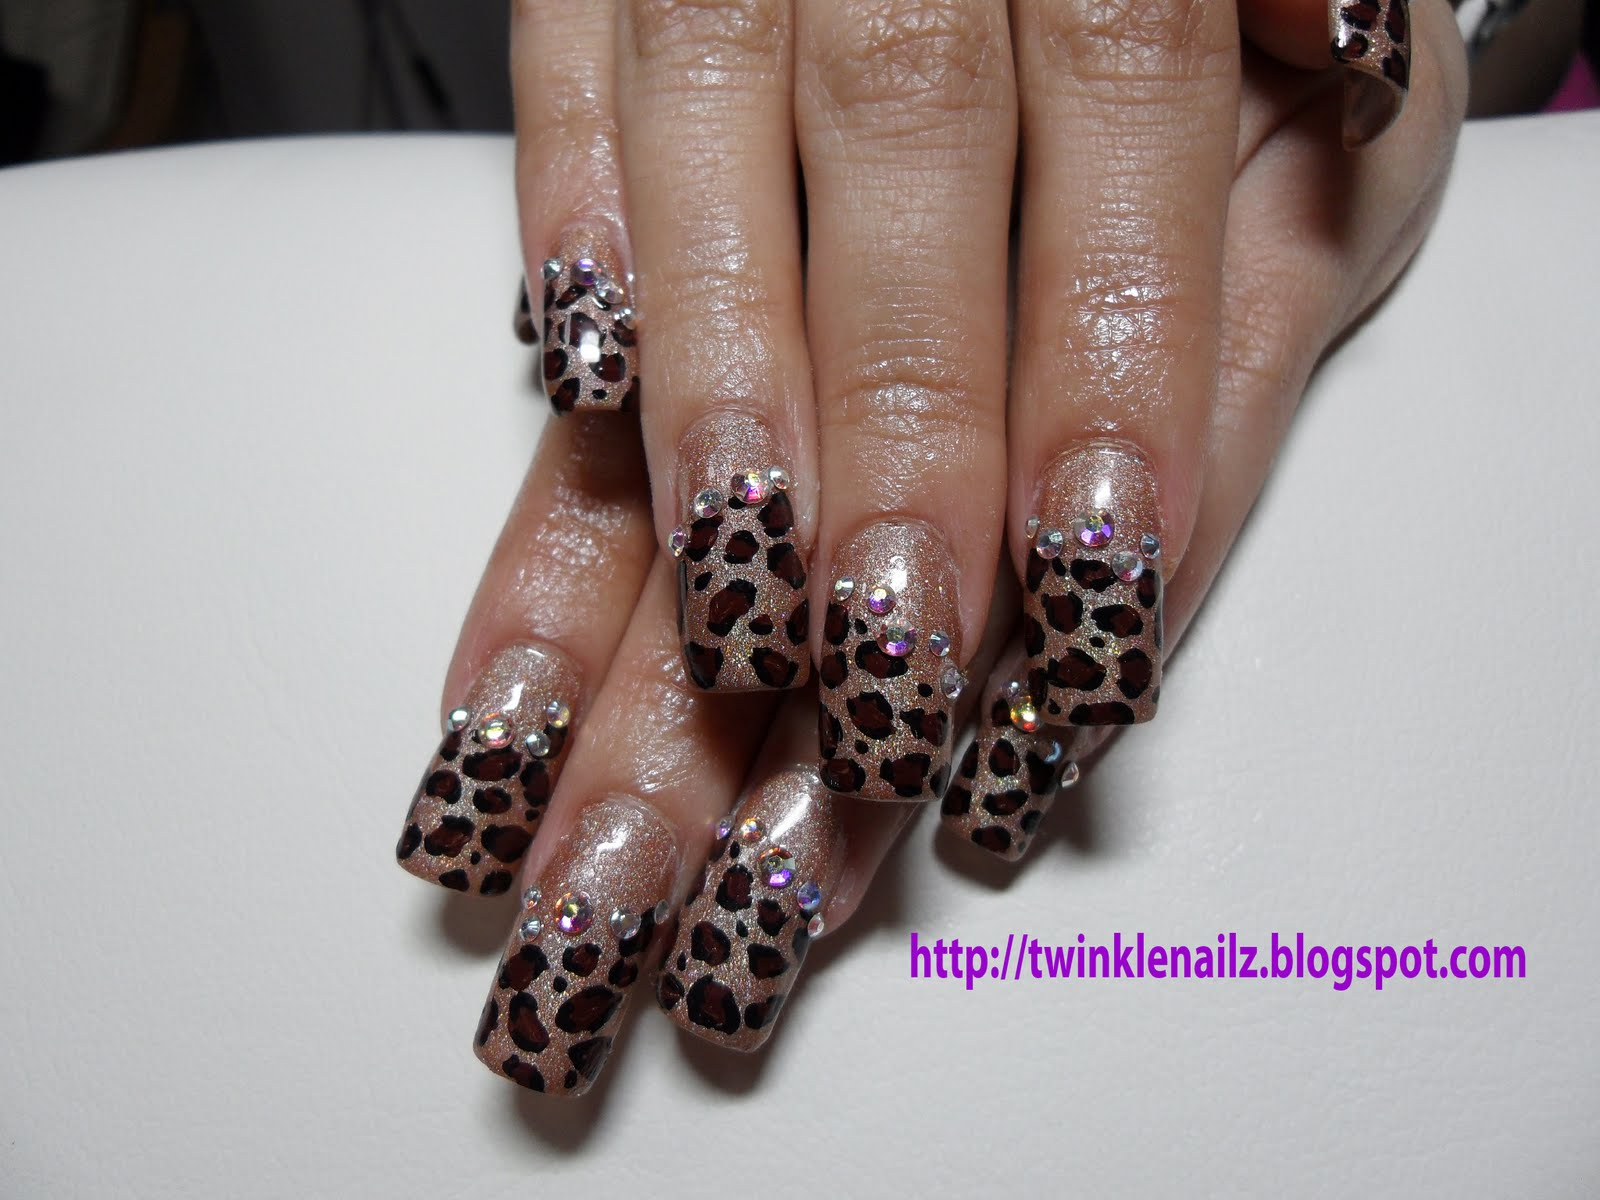 Acrylic Nails, inlay nail art - TWINKEL NAILZ